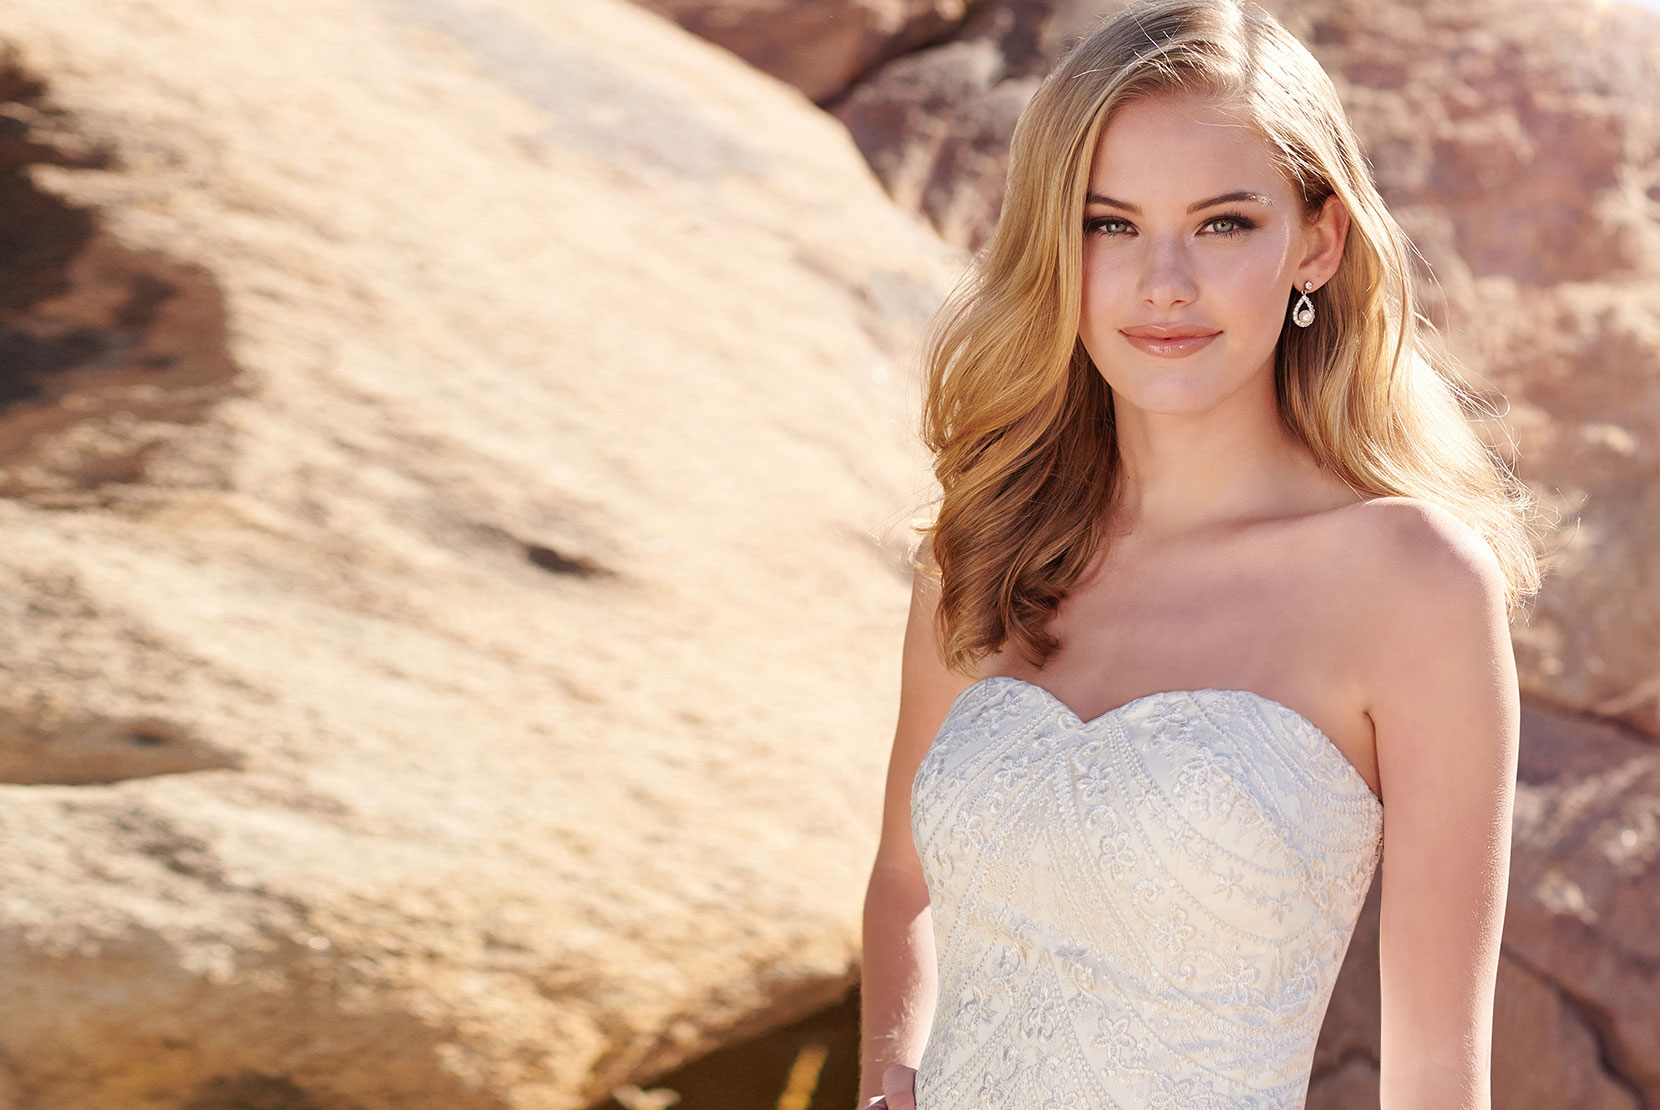 Blonde in Lace Gown